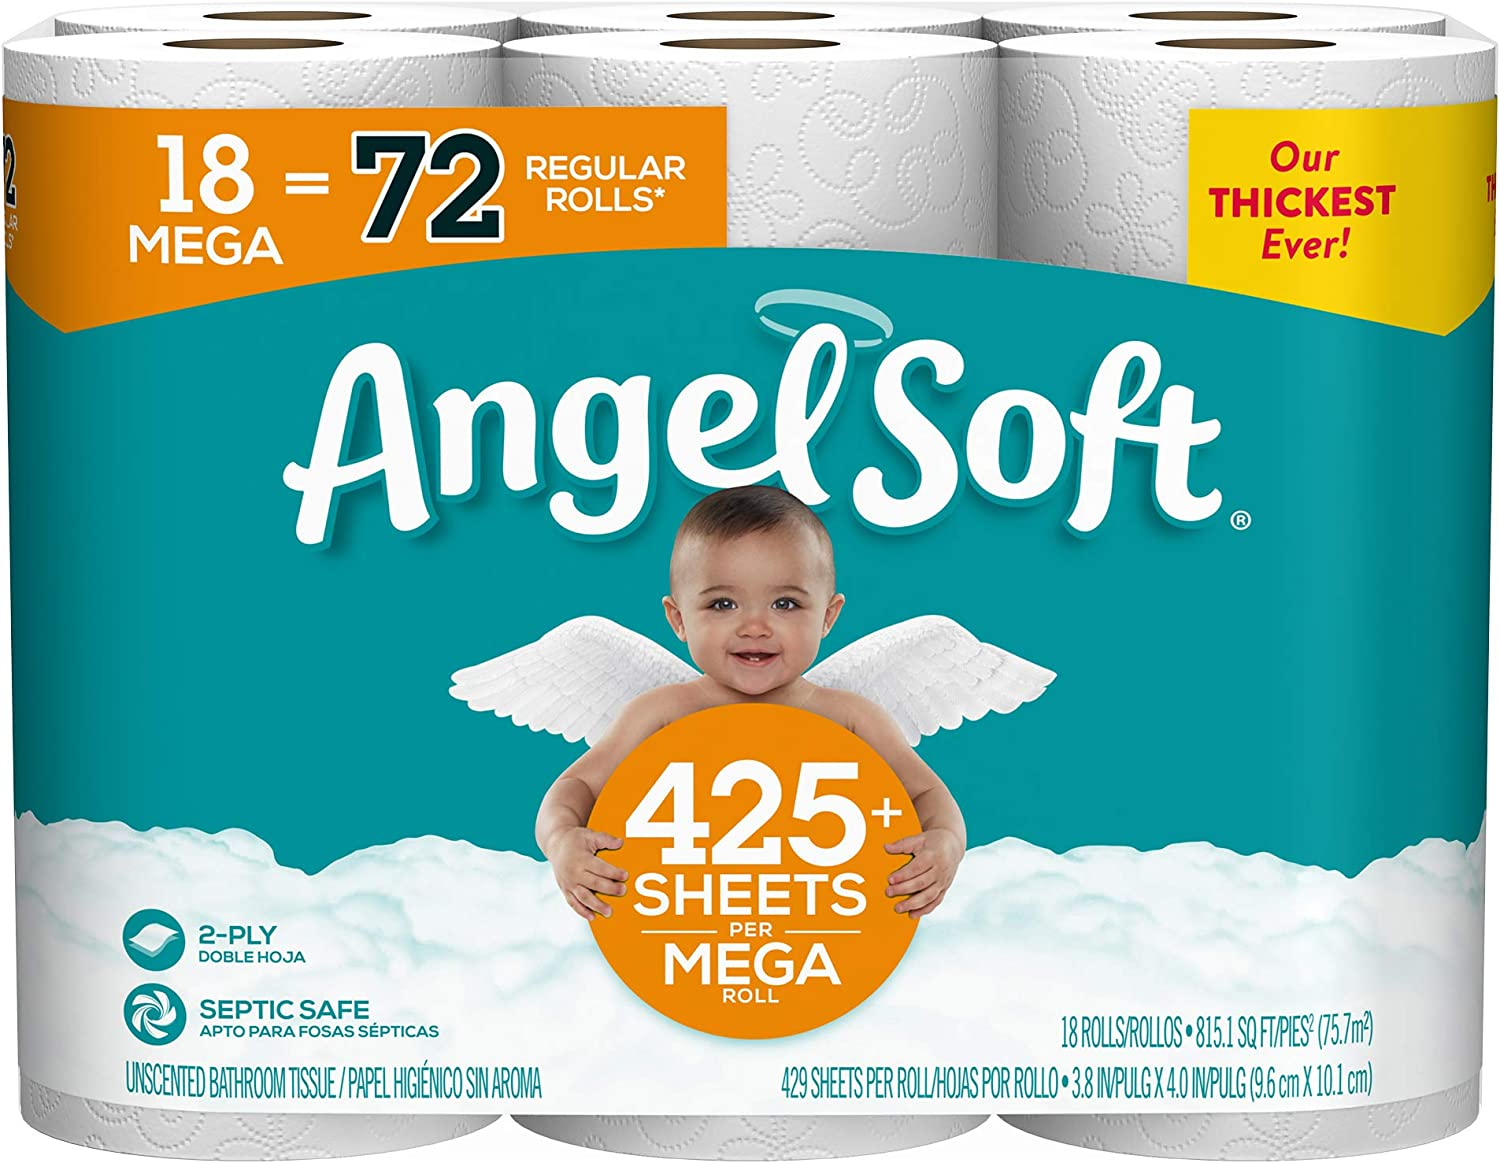 Angel Soft Toilet Paper, 72 Regular Rolls, 18 Count